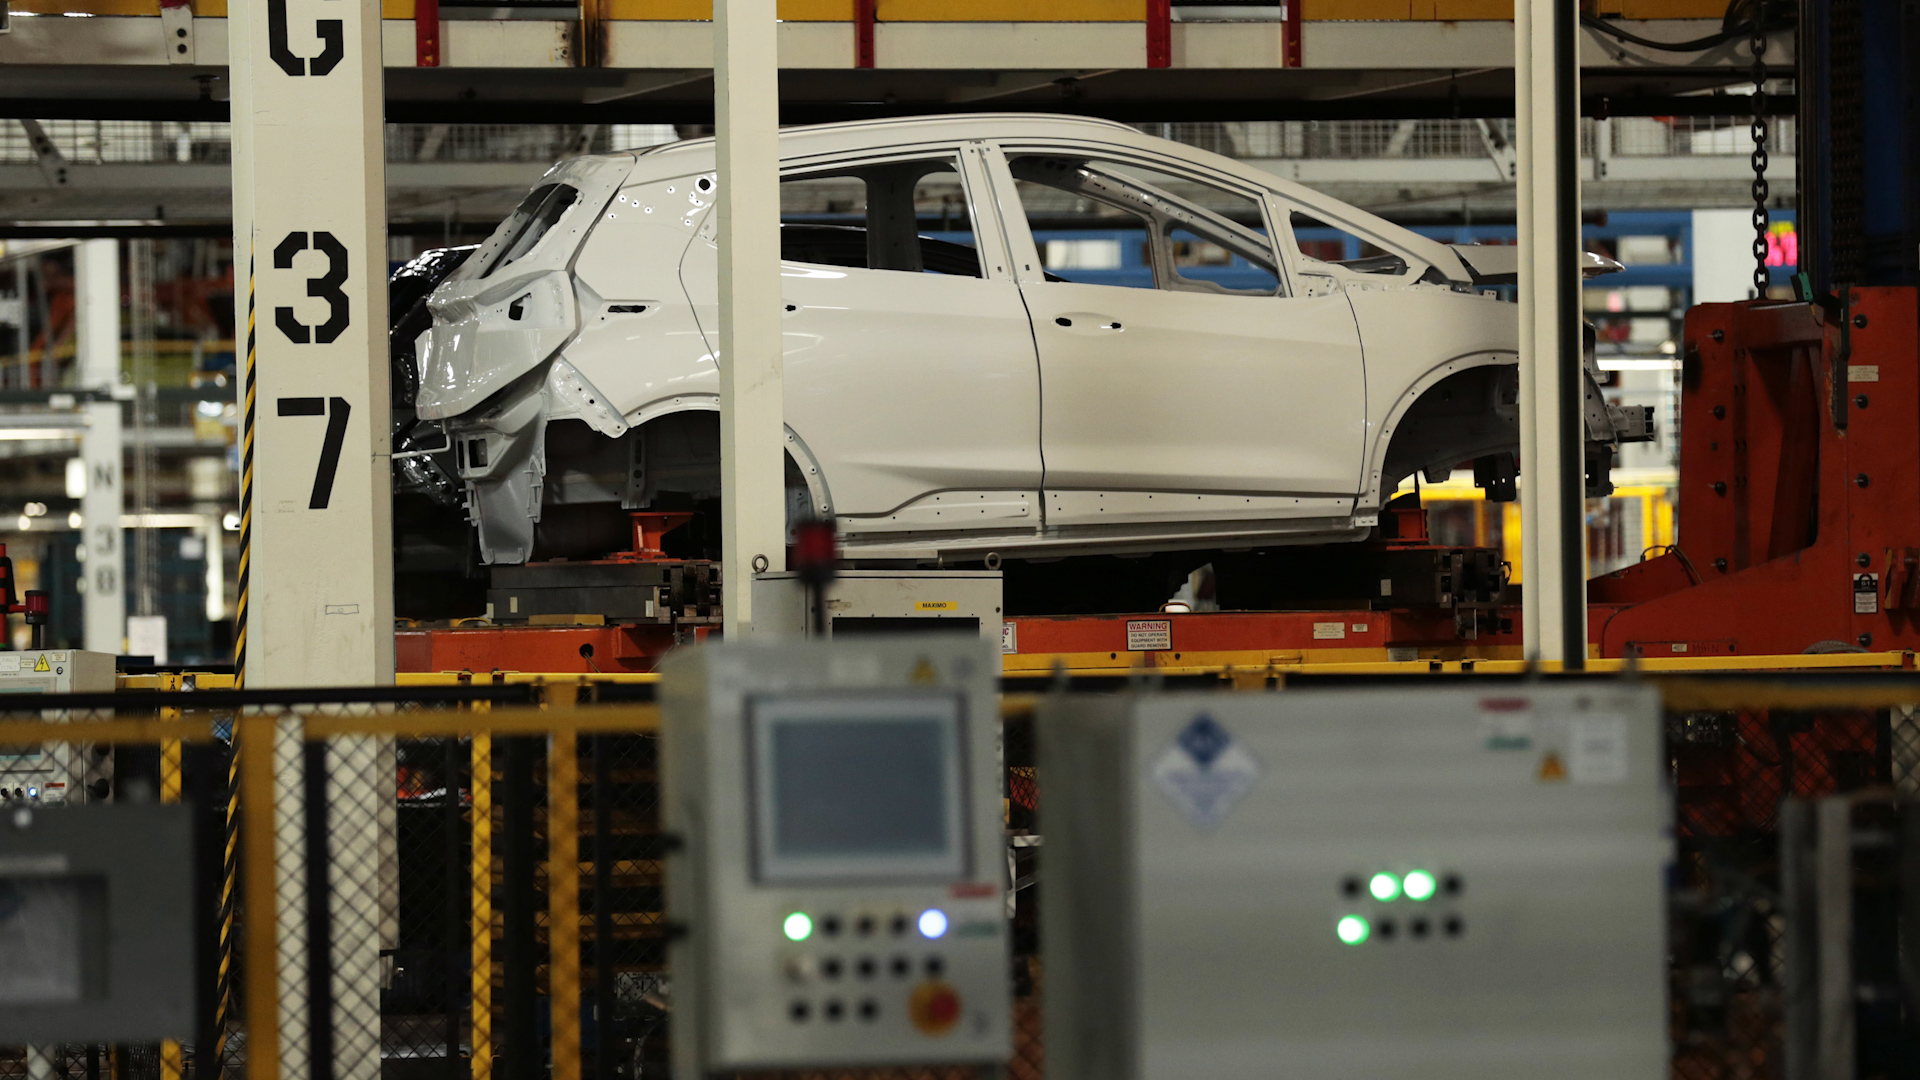 A 2019 Chevrolet Bolt vehicle sits on the assembly line at the General Motors Co. Orion Assembly plant in Orion Township, Michigan, U.S.